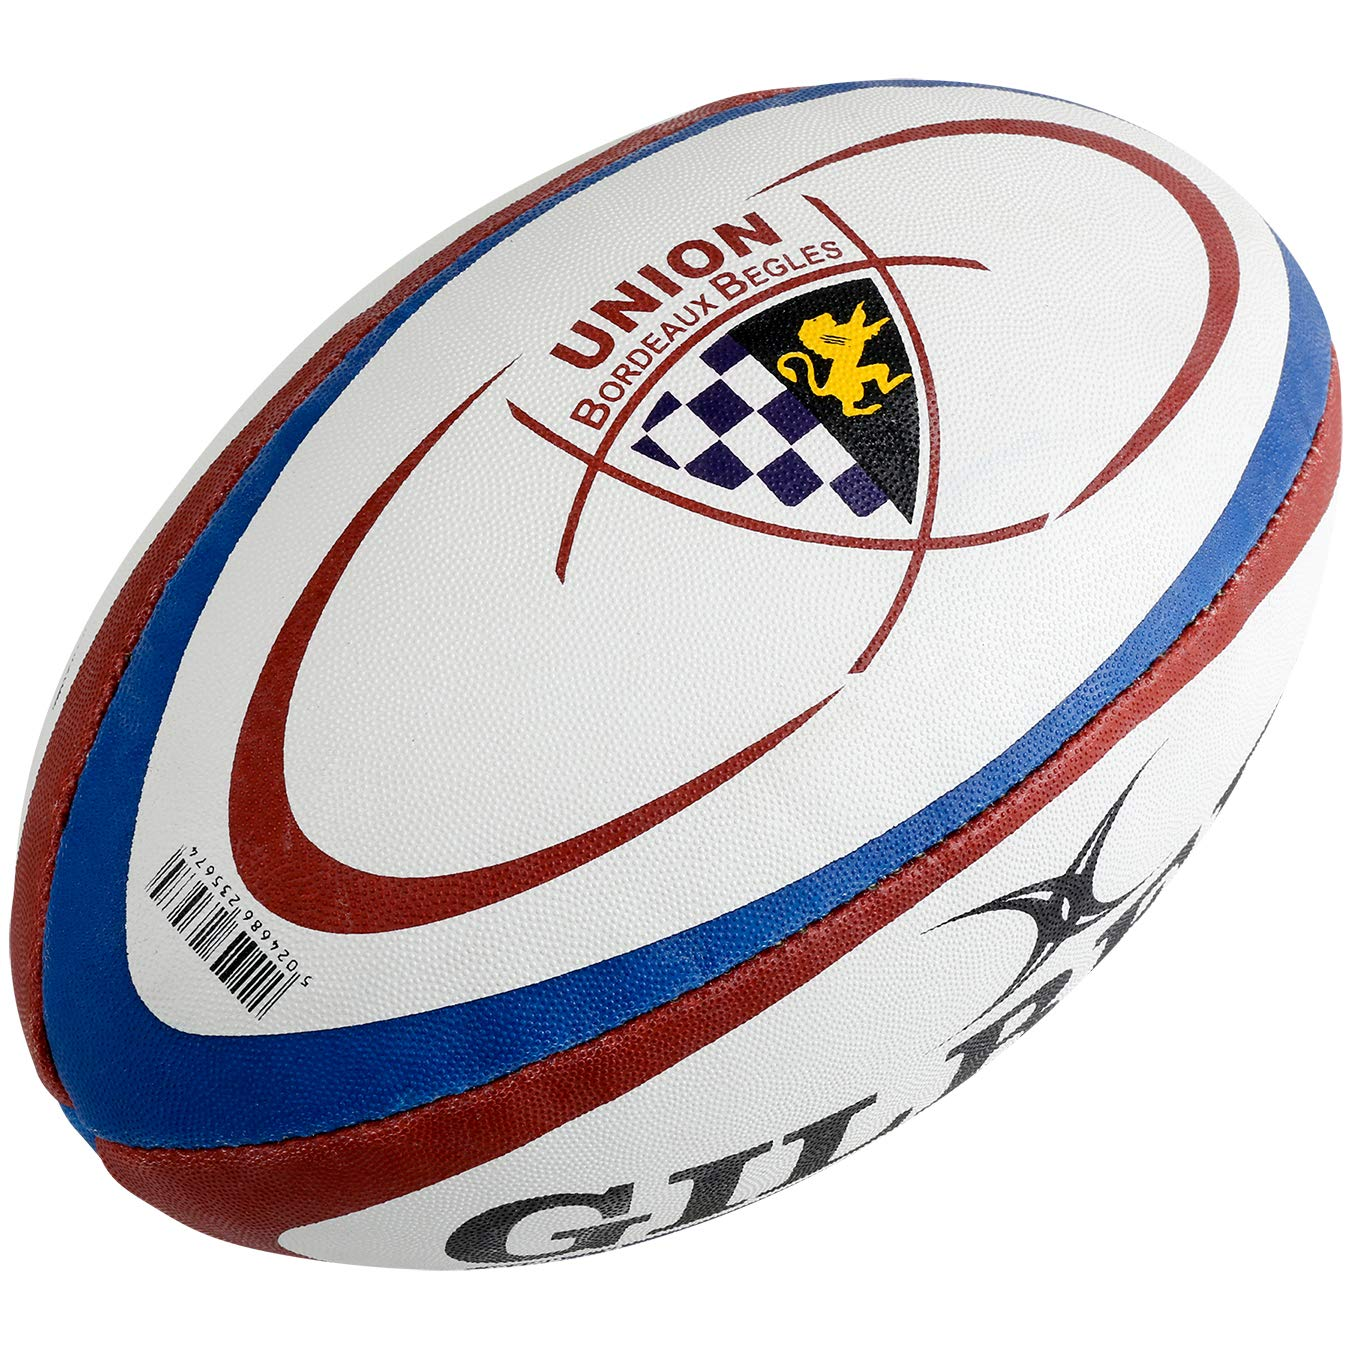 Gilbert Mini Ballon de Rugby Union Bordeaux Bègles (Taille 1 ...